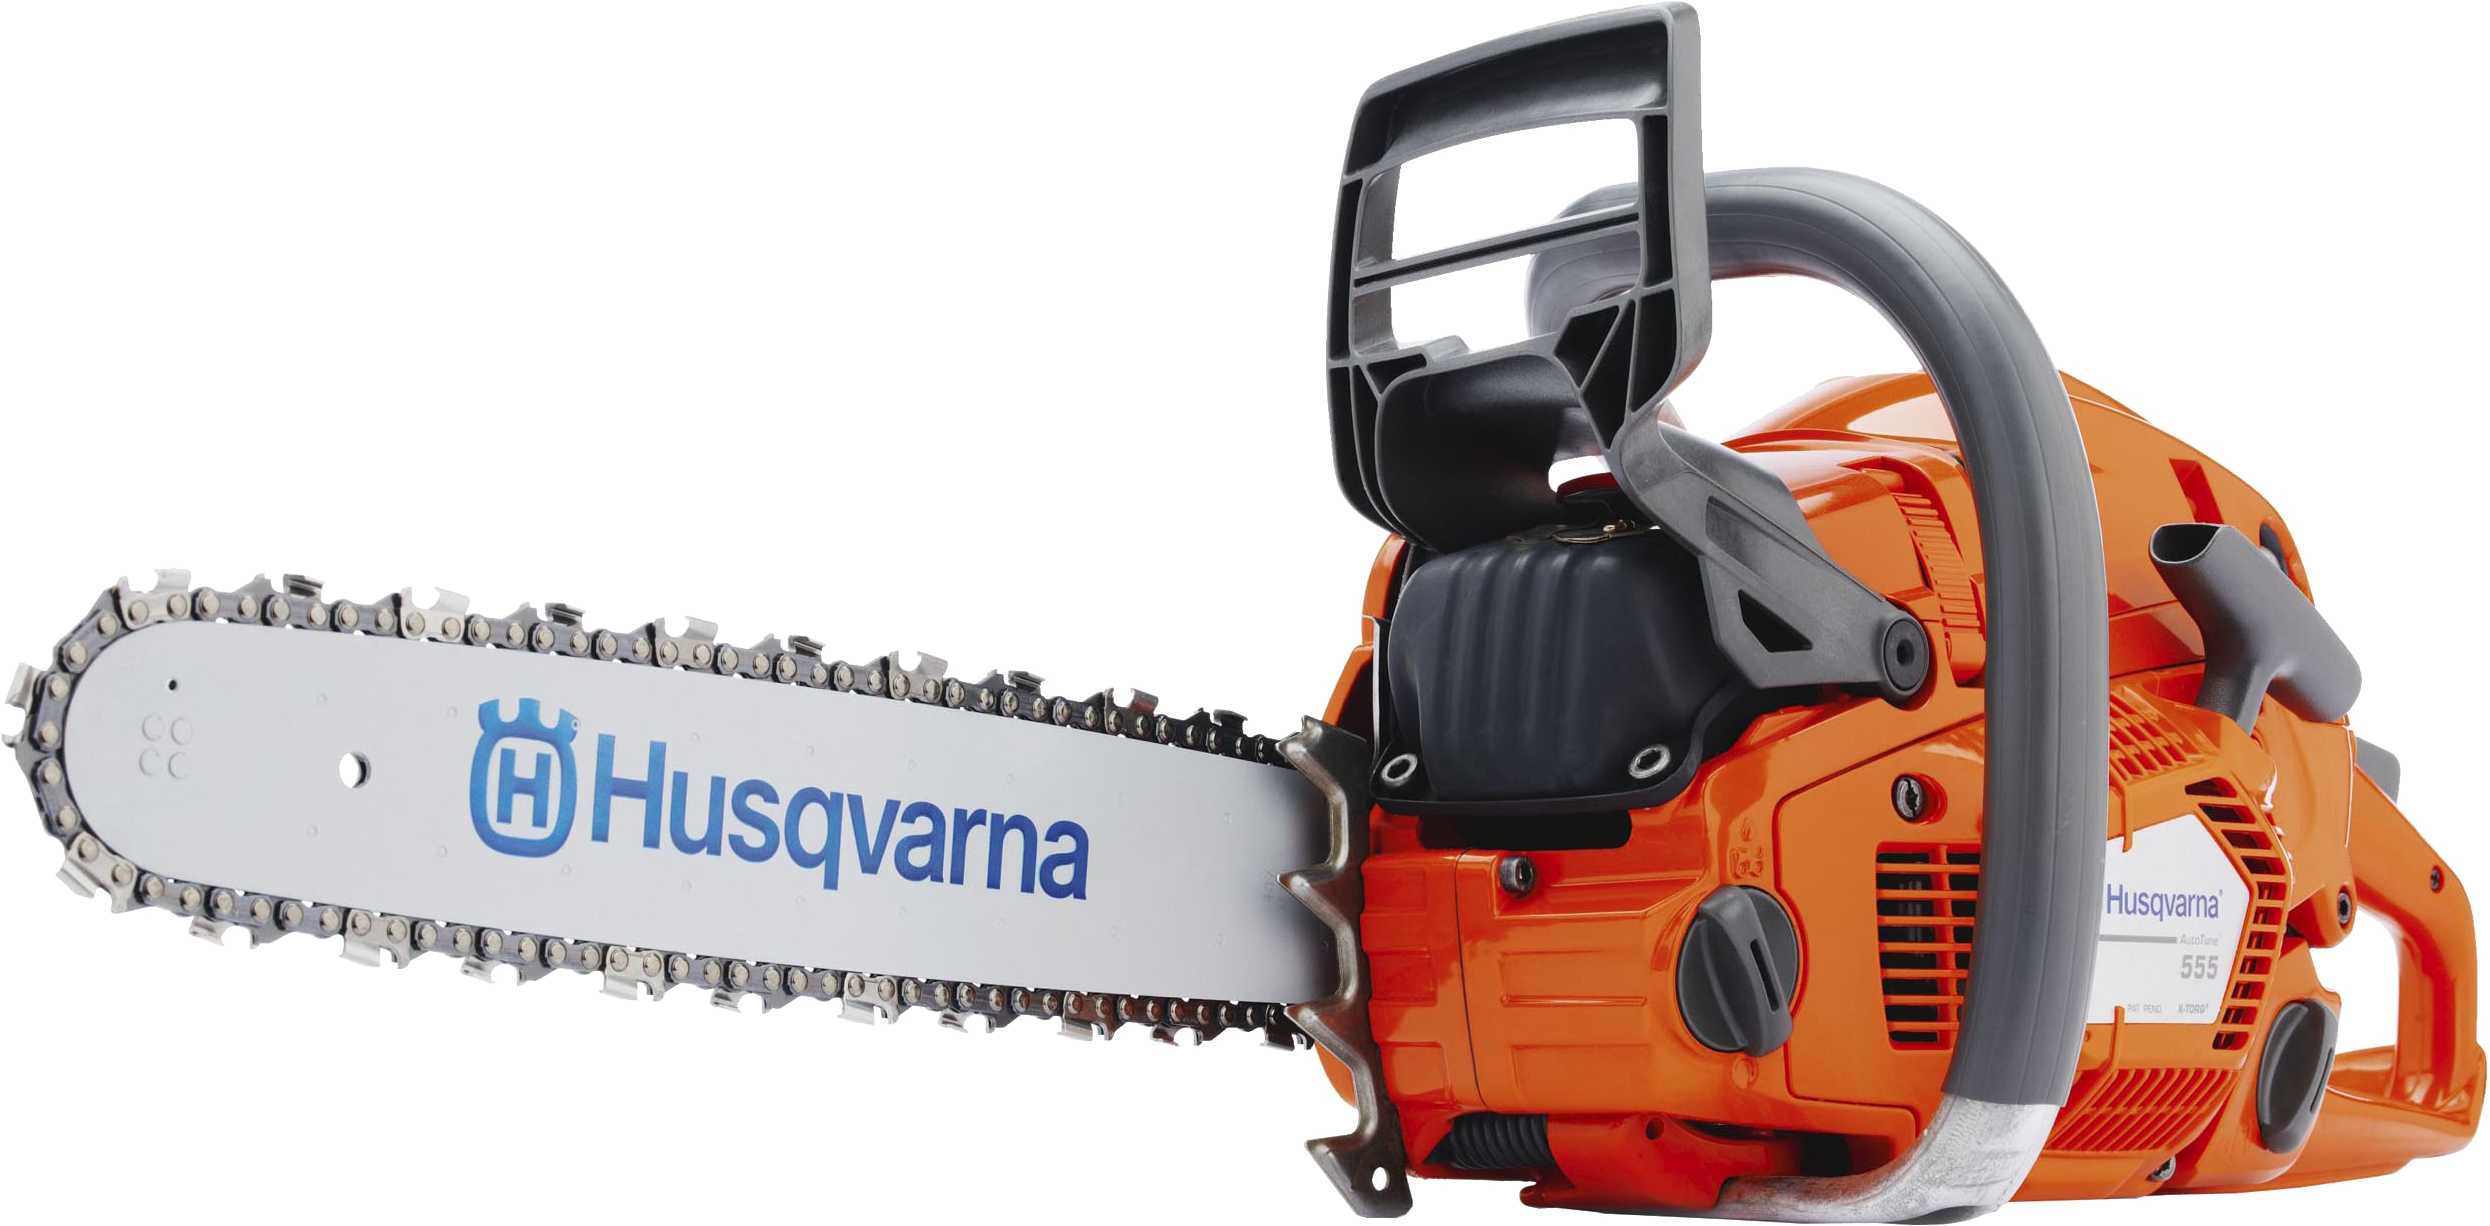 Chain saw png. Chainsaw images free download